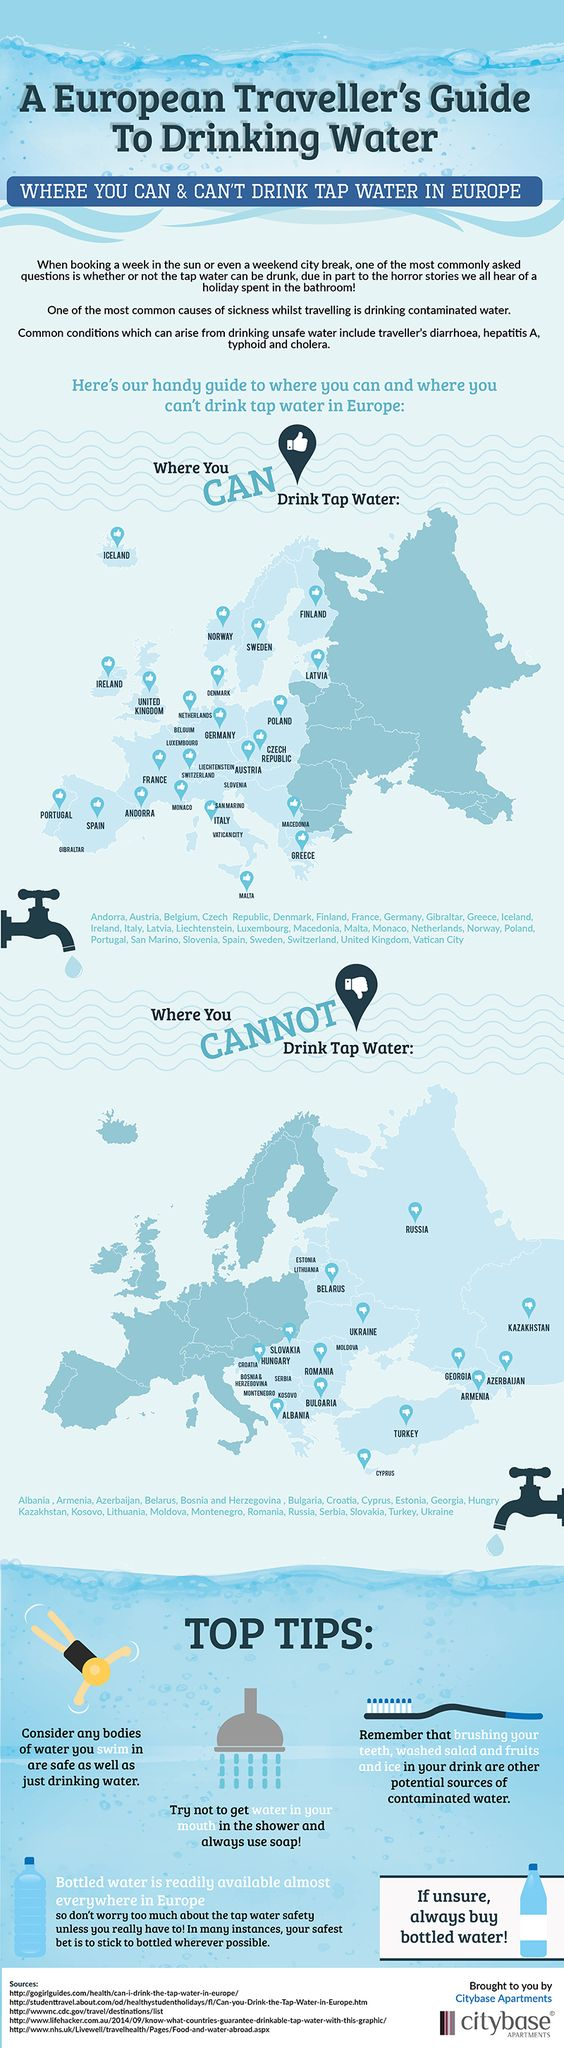 A European Traveller's Guide To Drinking Water [Infographic] - Citybase Apartments